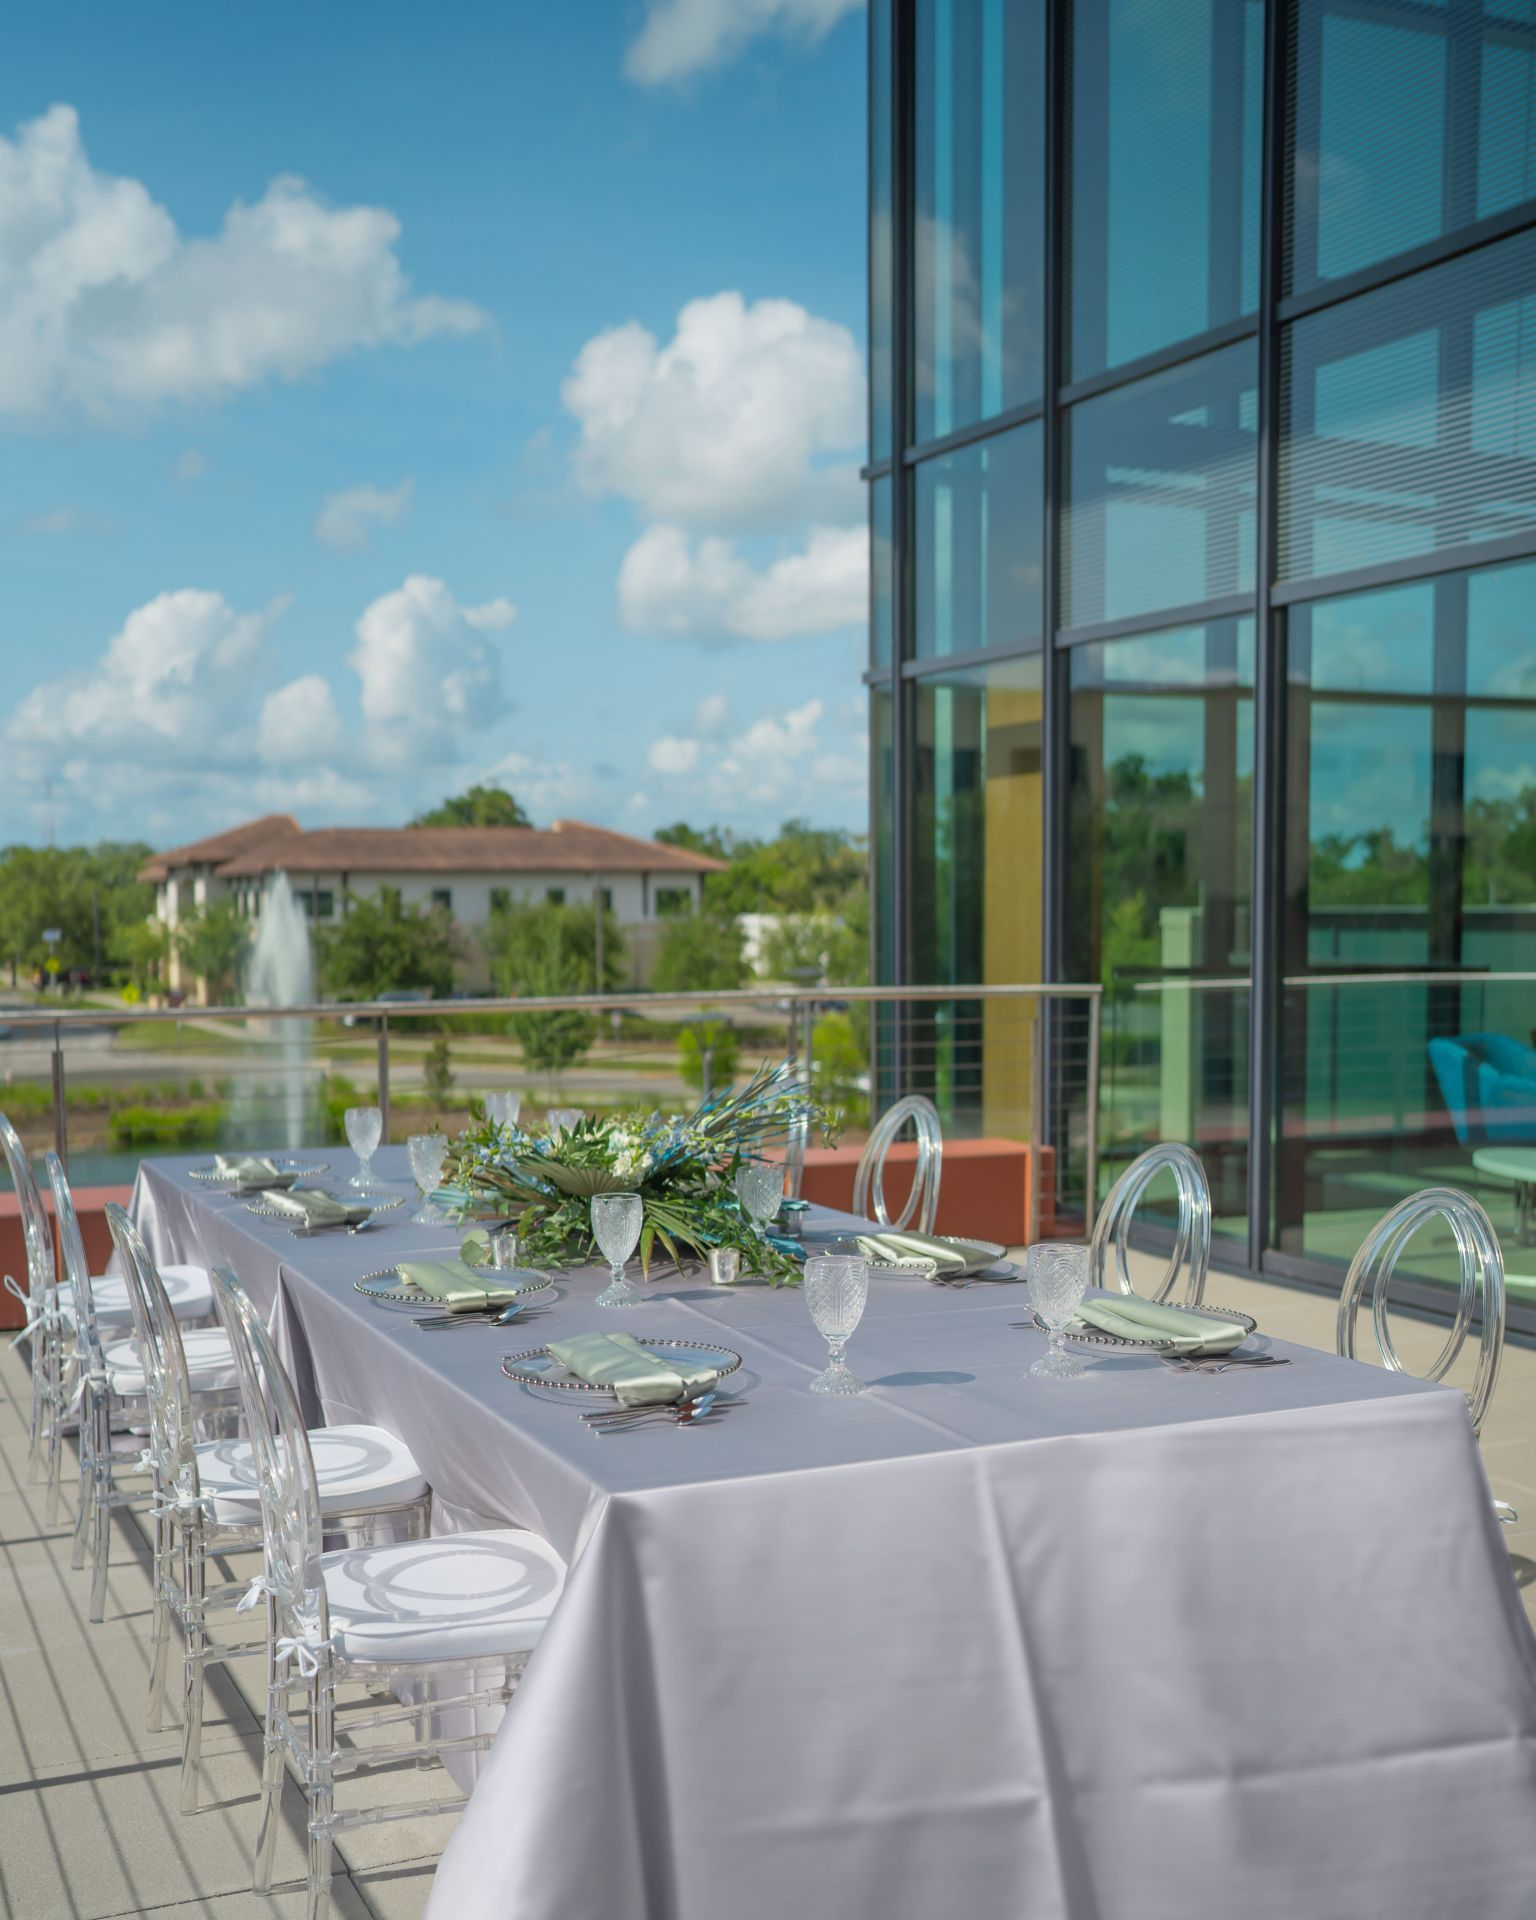 Wellvue- The Center for Health & Wellbeing Orlando8